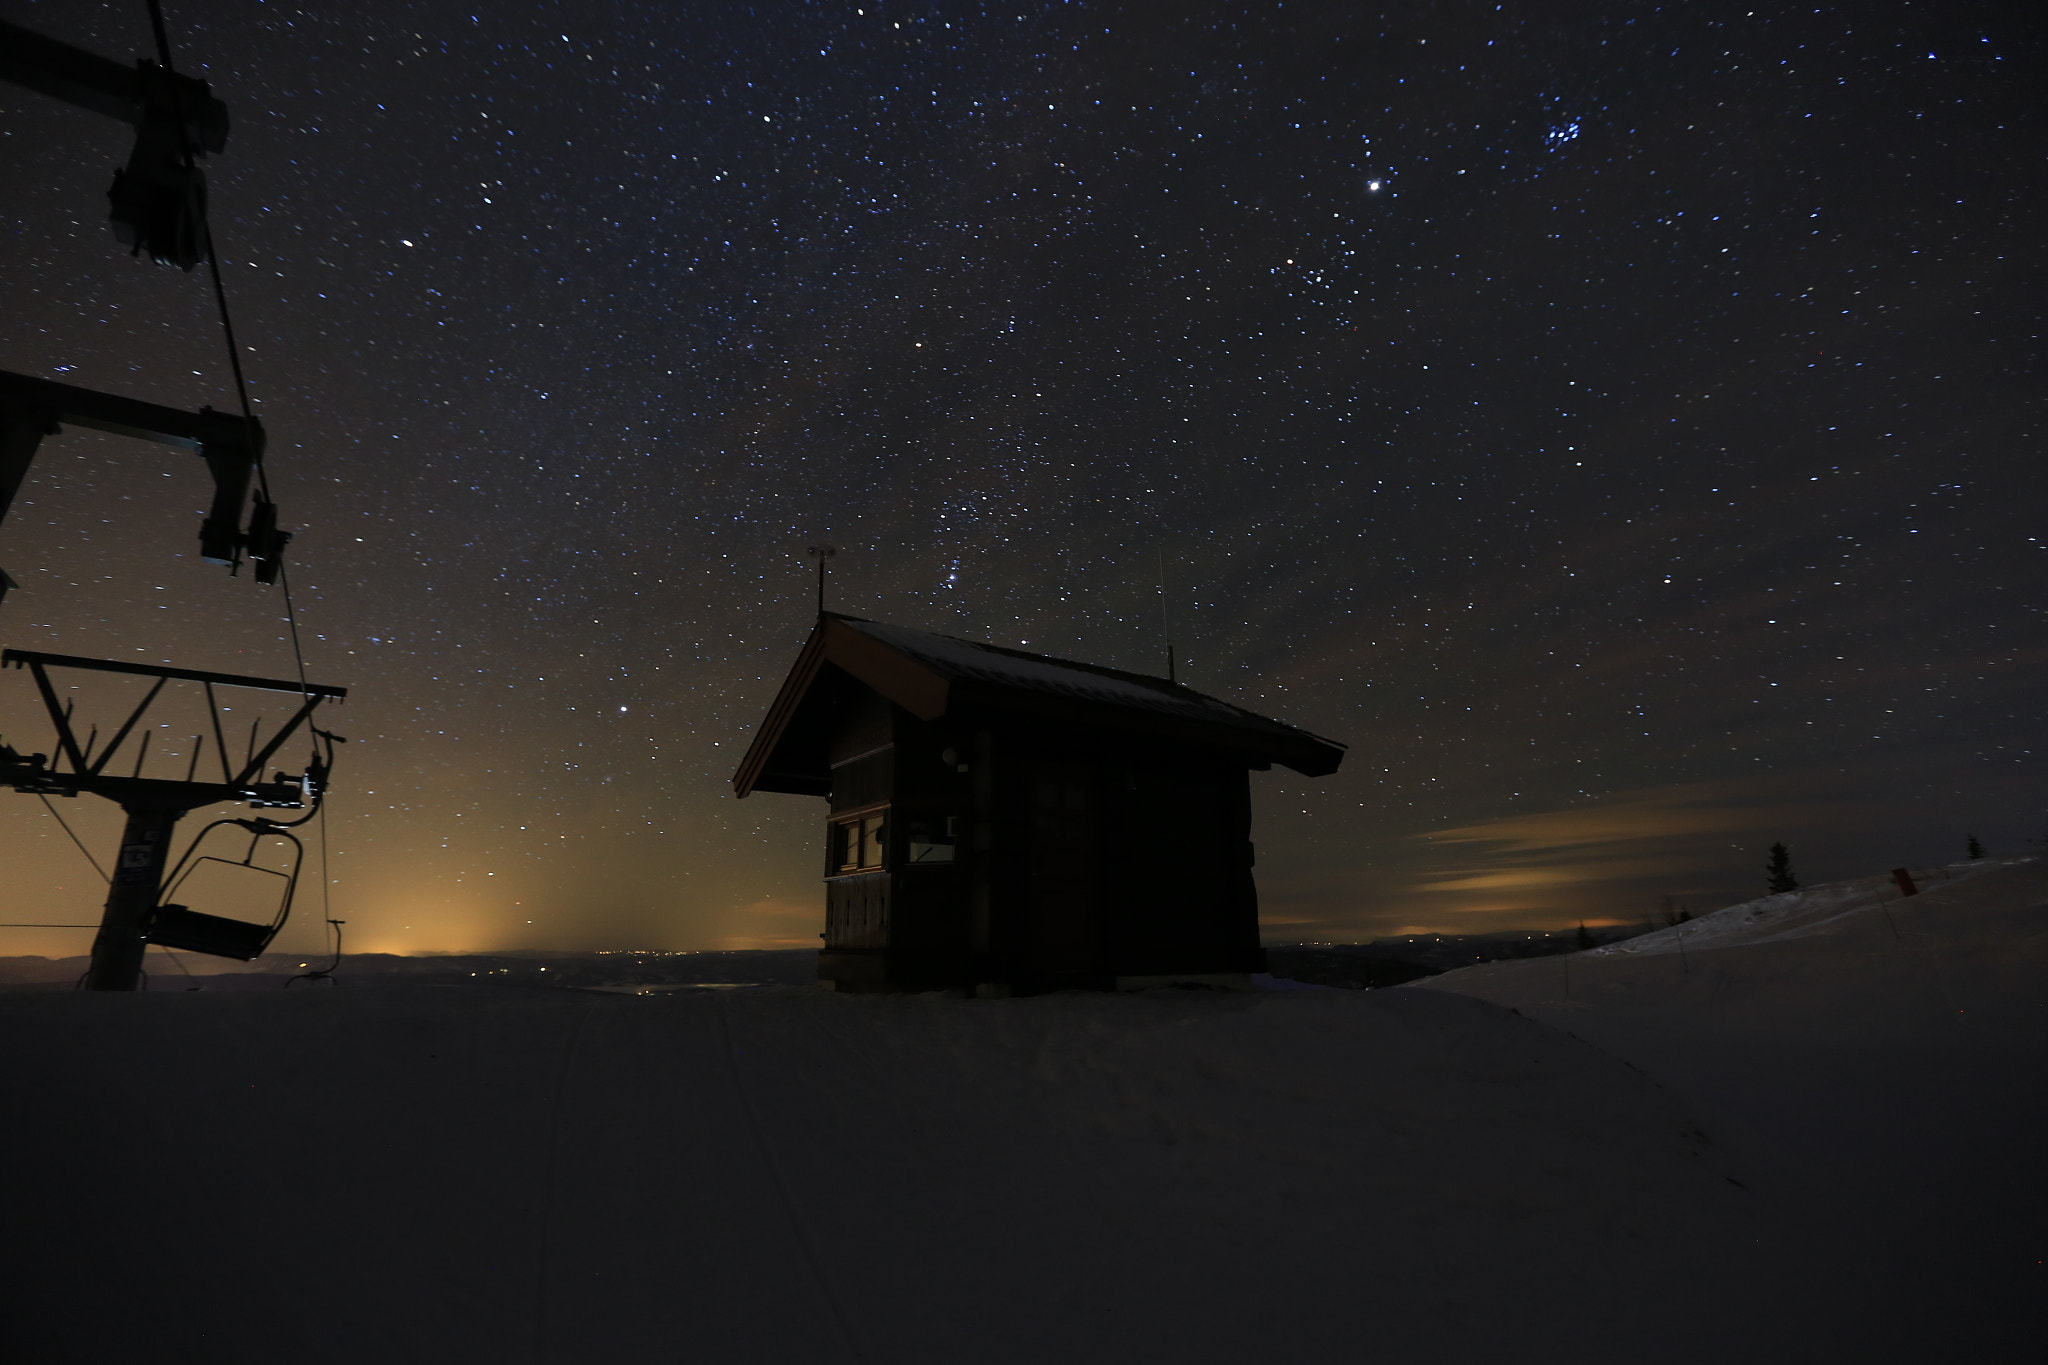 Photograph The ski house guarded by the stars by Carl Fredrik Melle on 500px